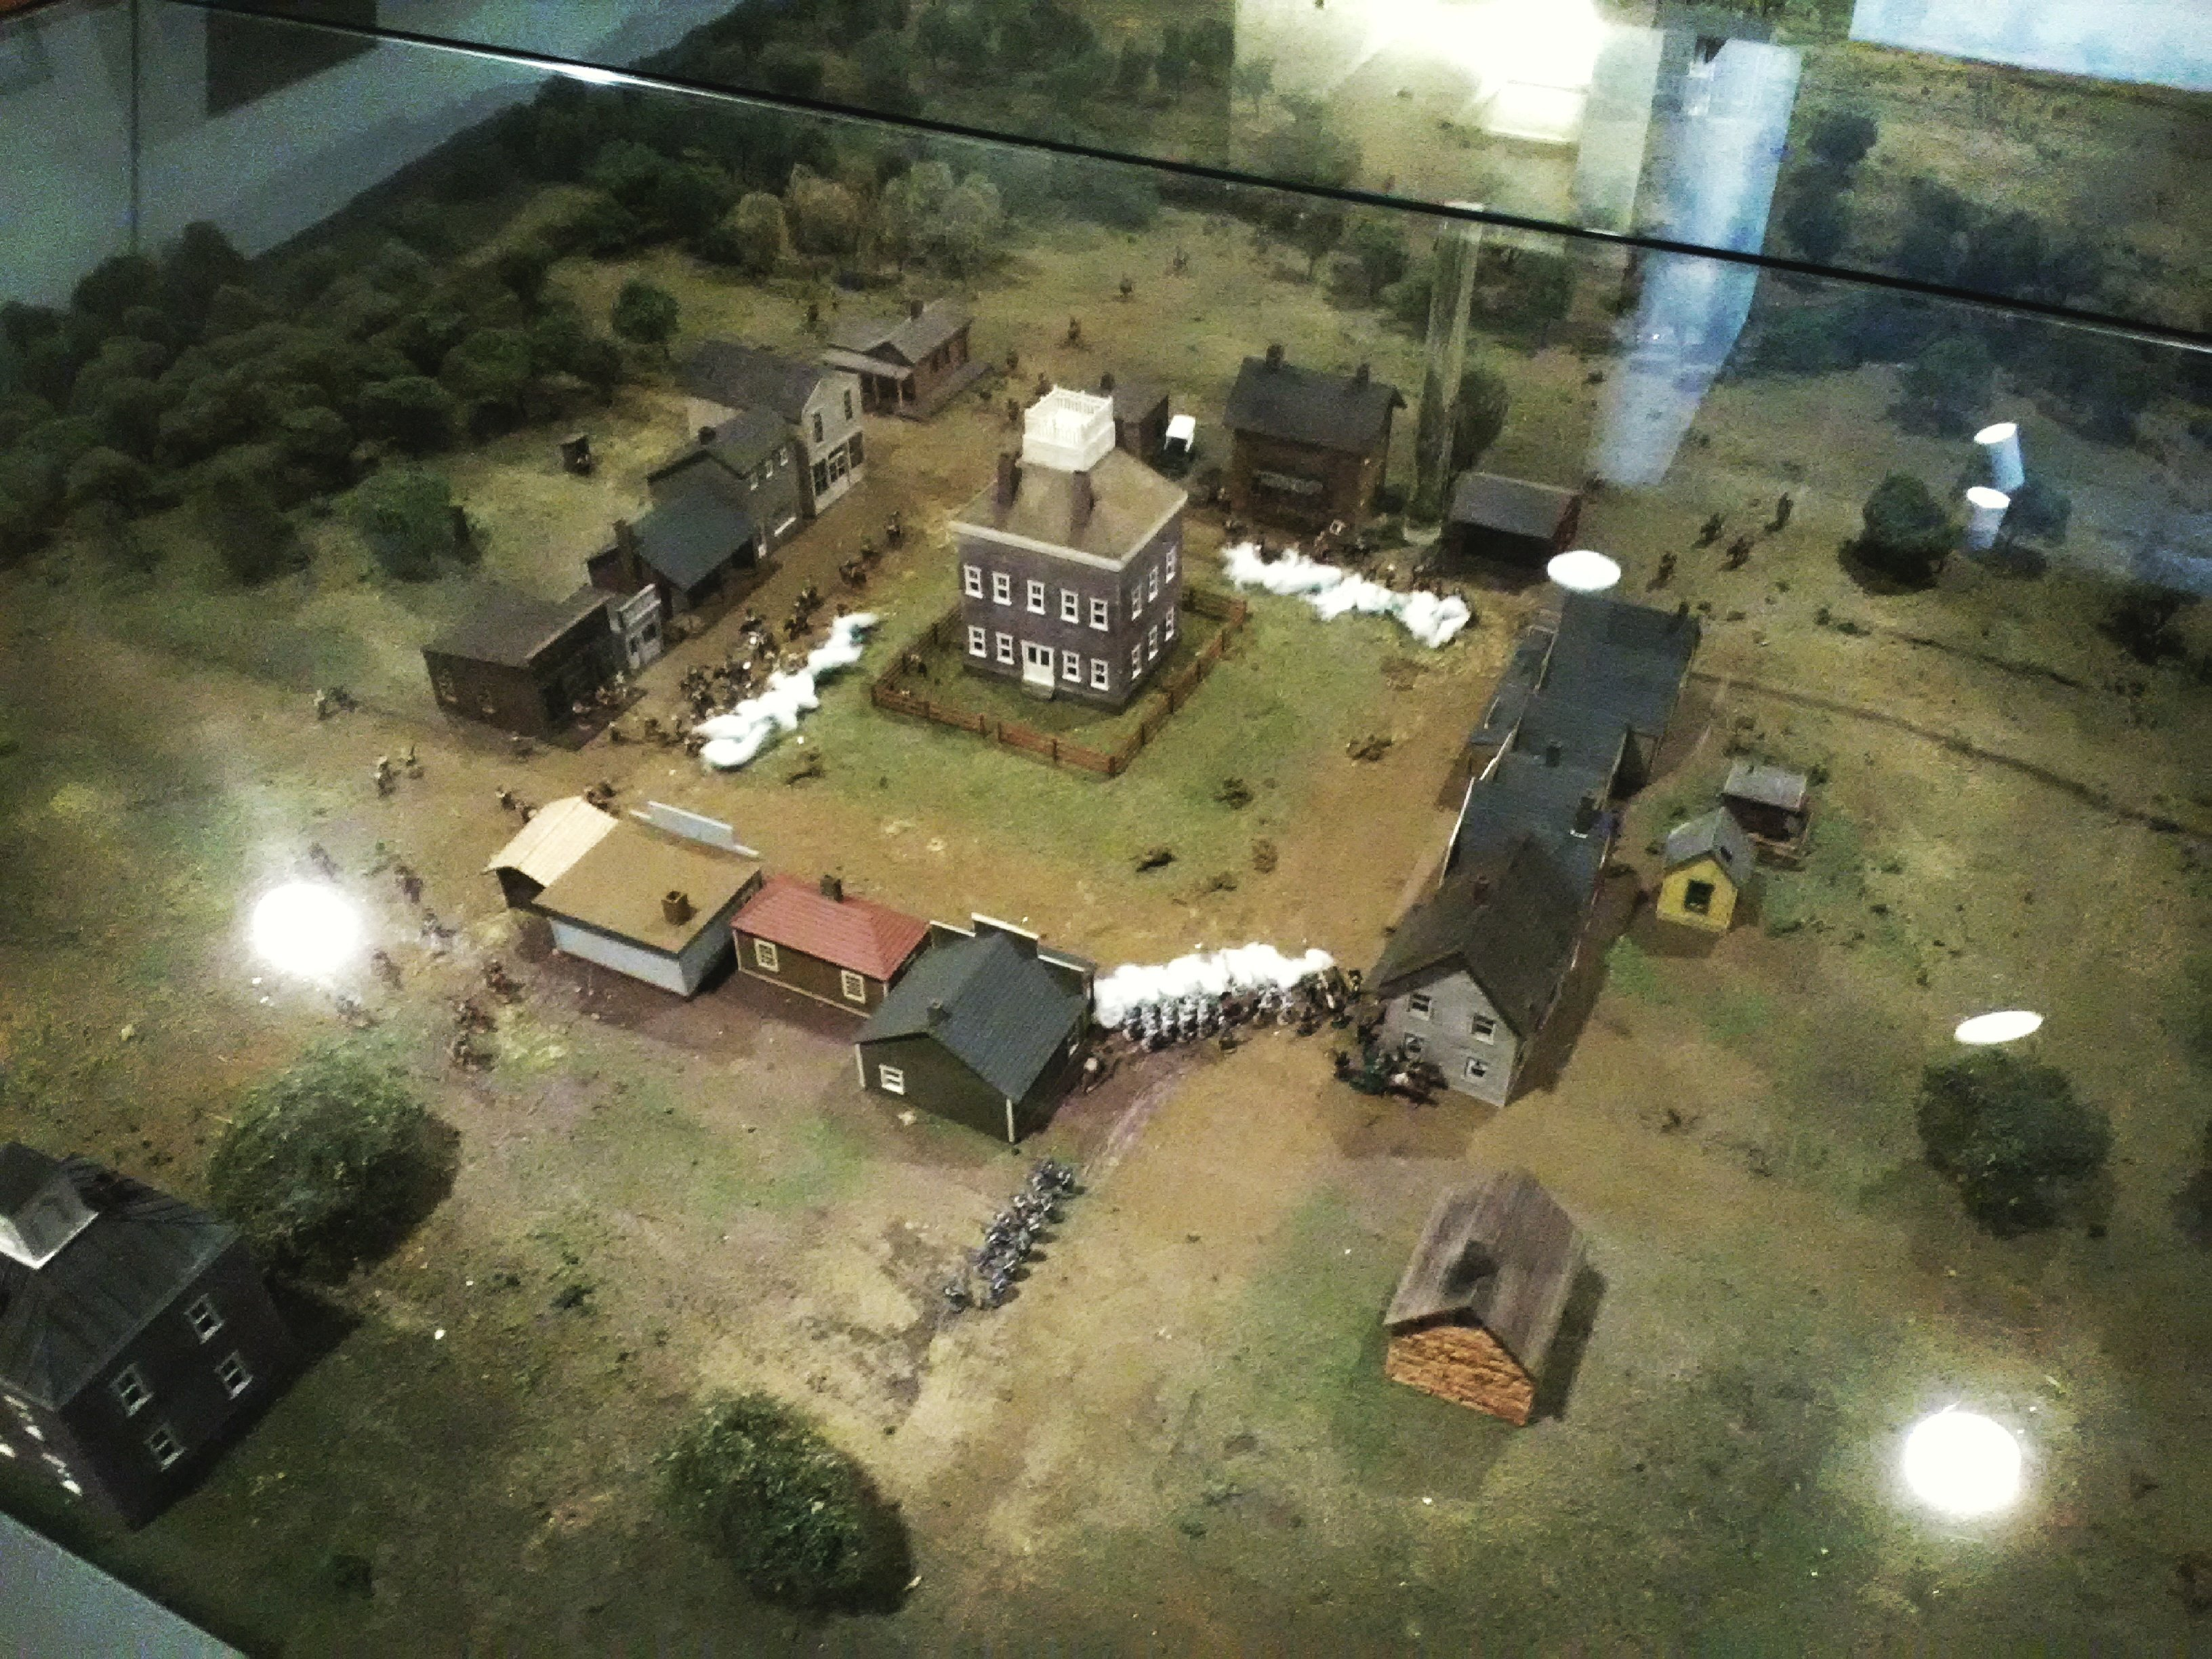 Diorama of pre-Civil War Carthage courthouse square on view at Civil War Museum.